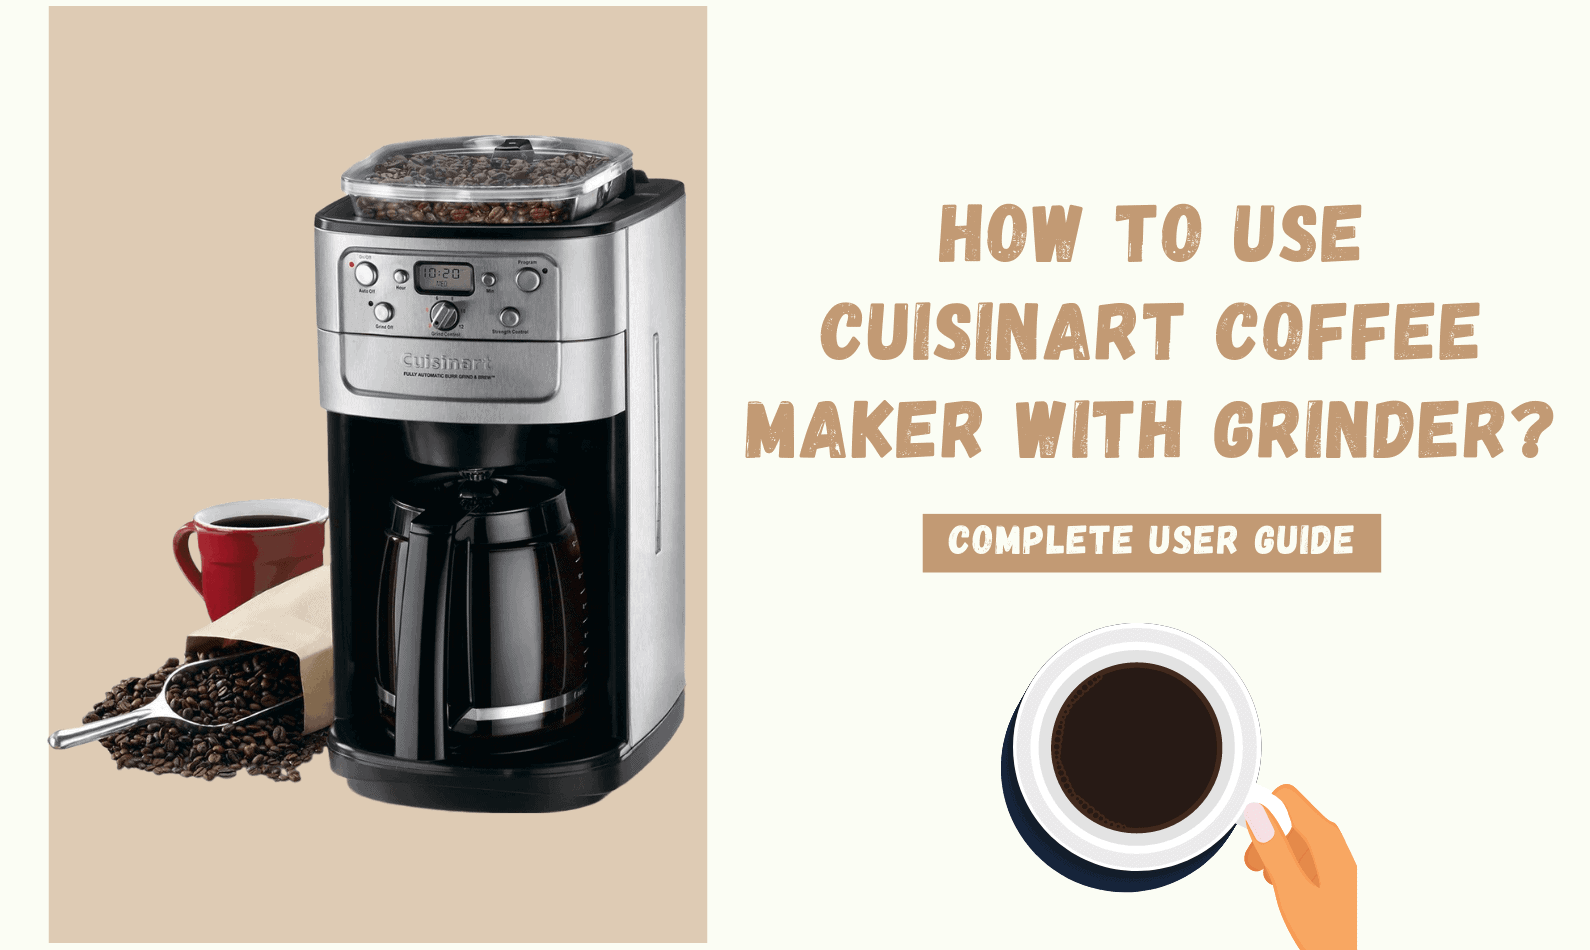 How to use Cuisinart Coffee Maker with Grinder